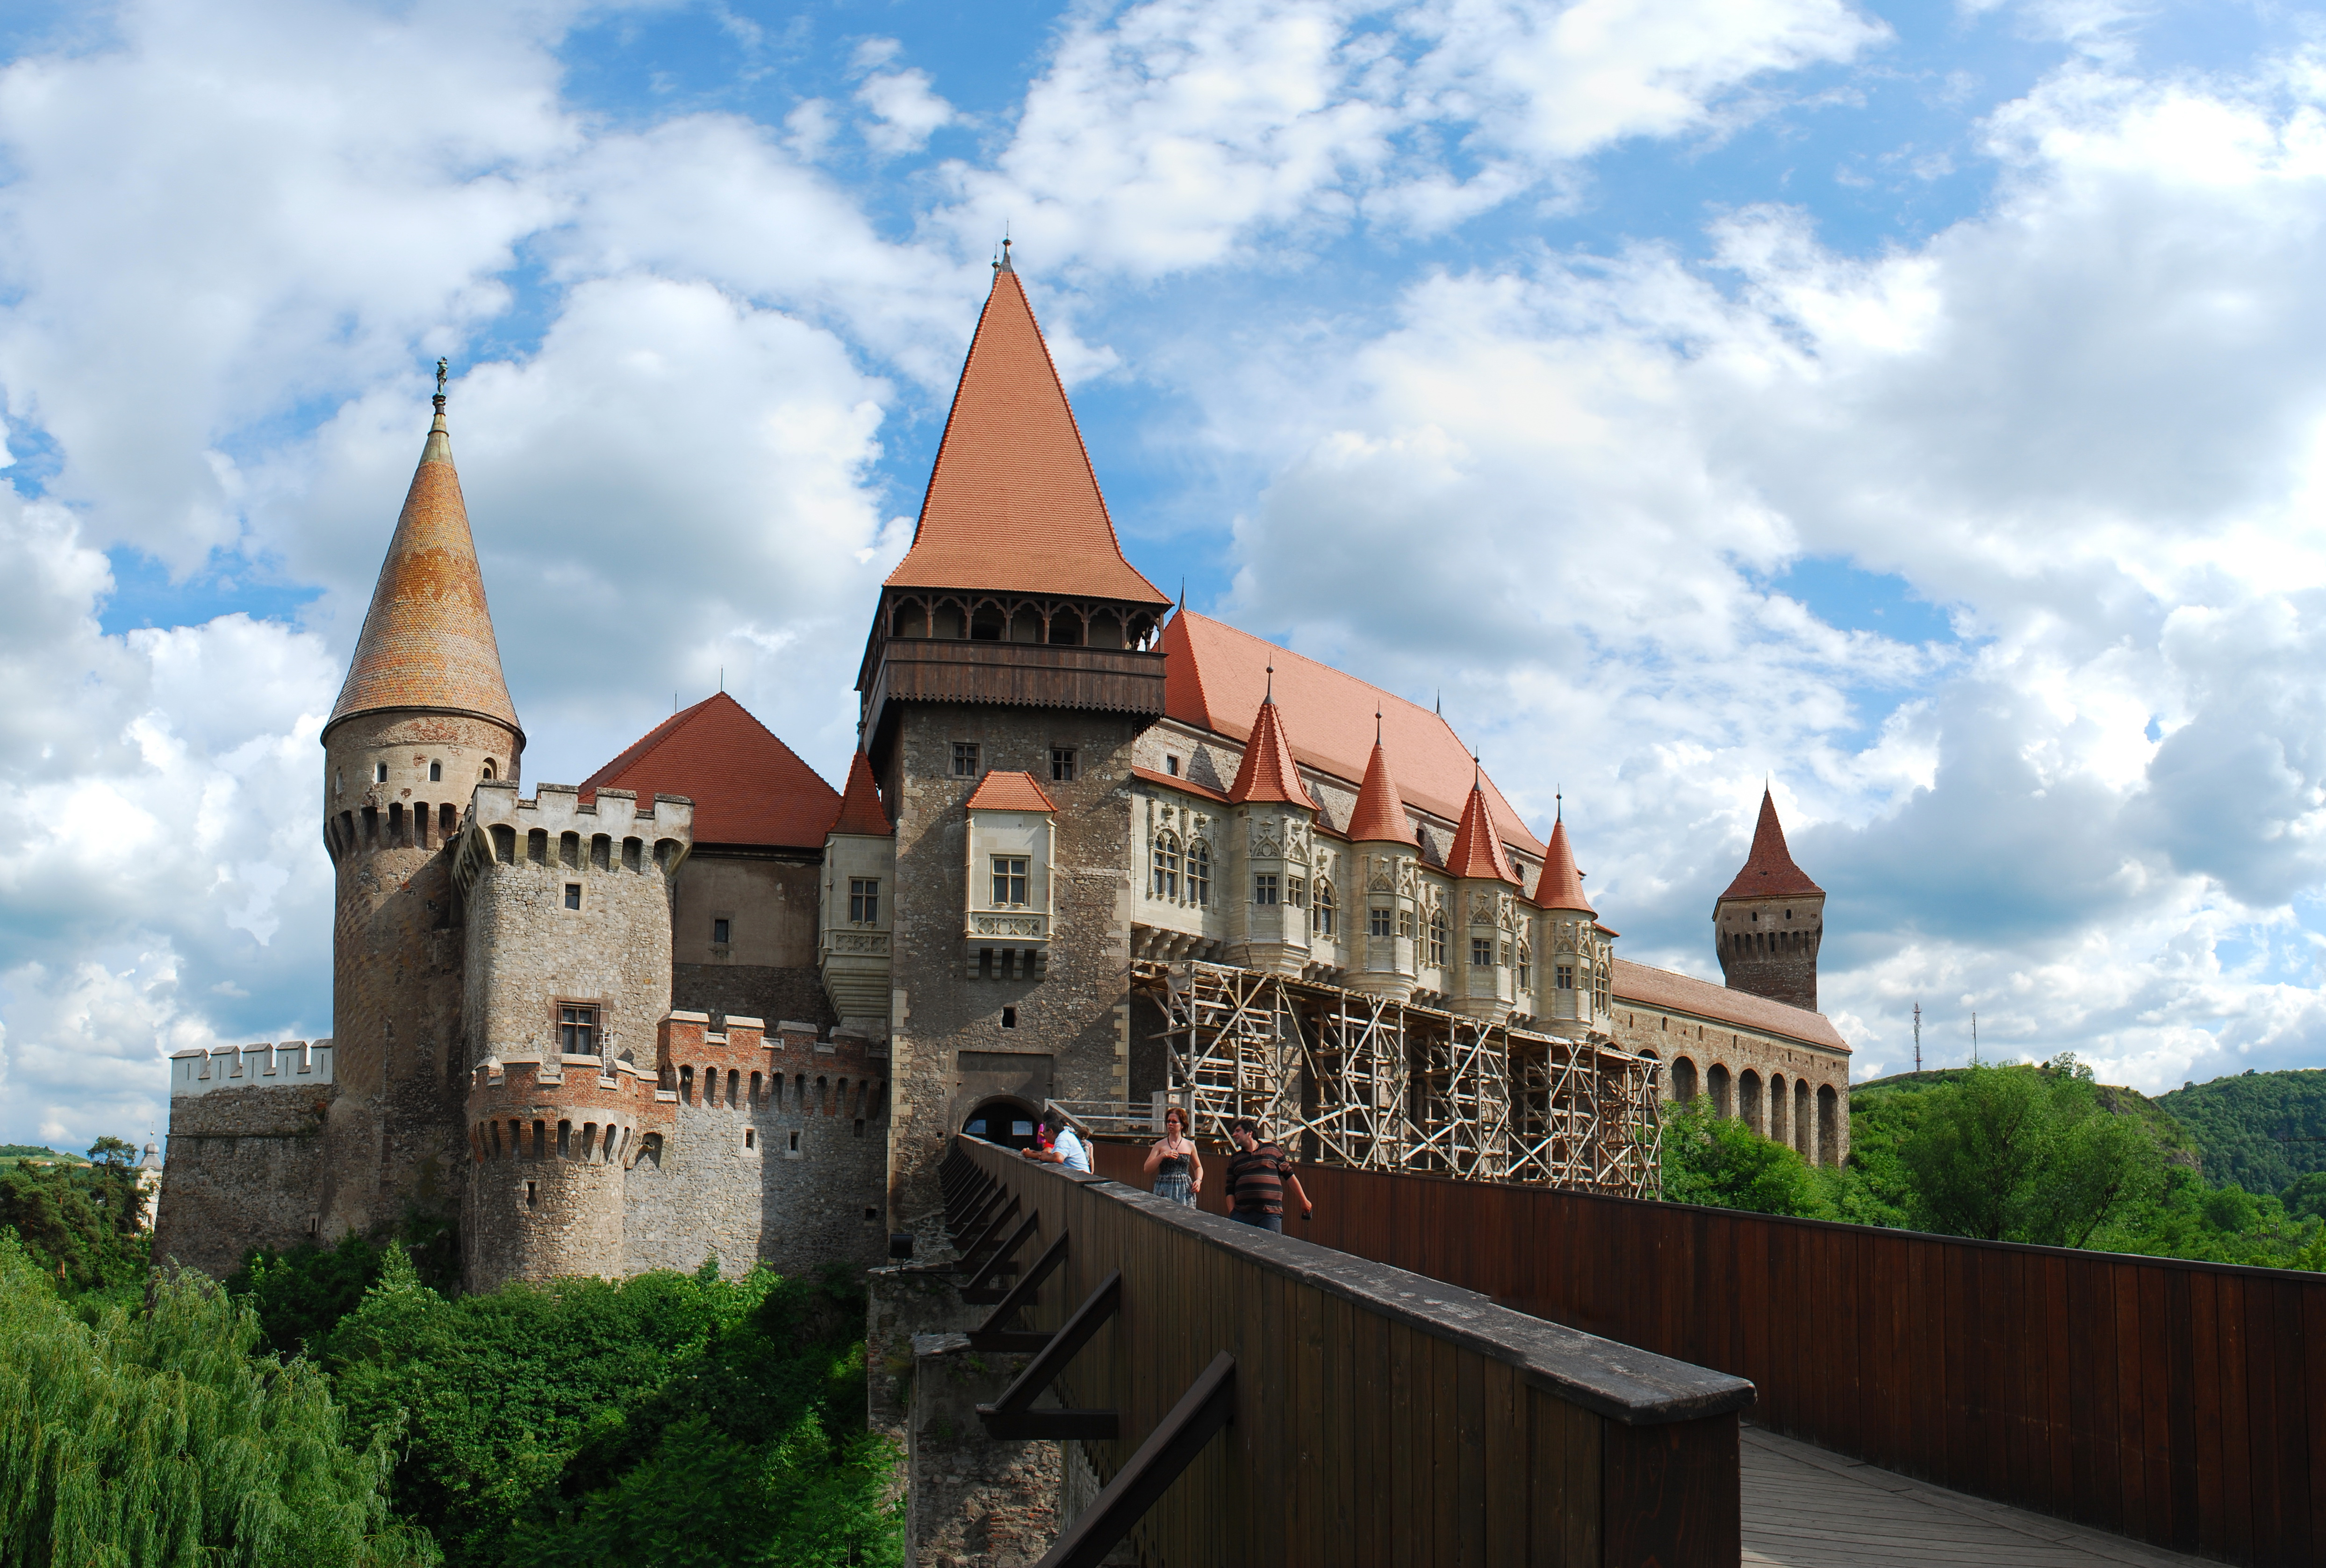 5 Corvin Castle Hd Wallpapers Backgrounds Wallpaper Abyss